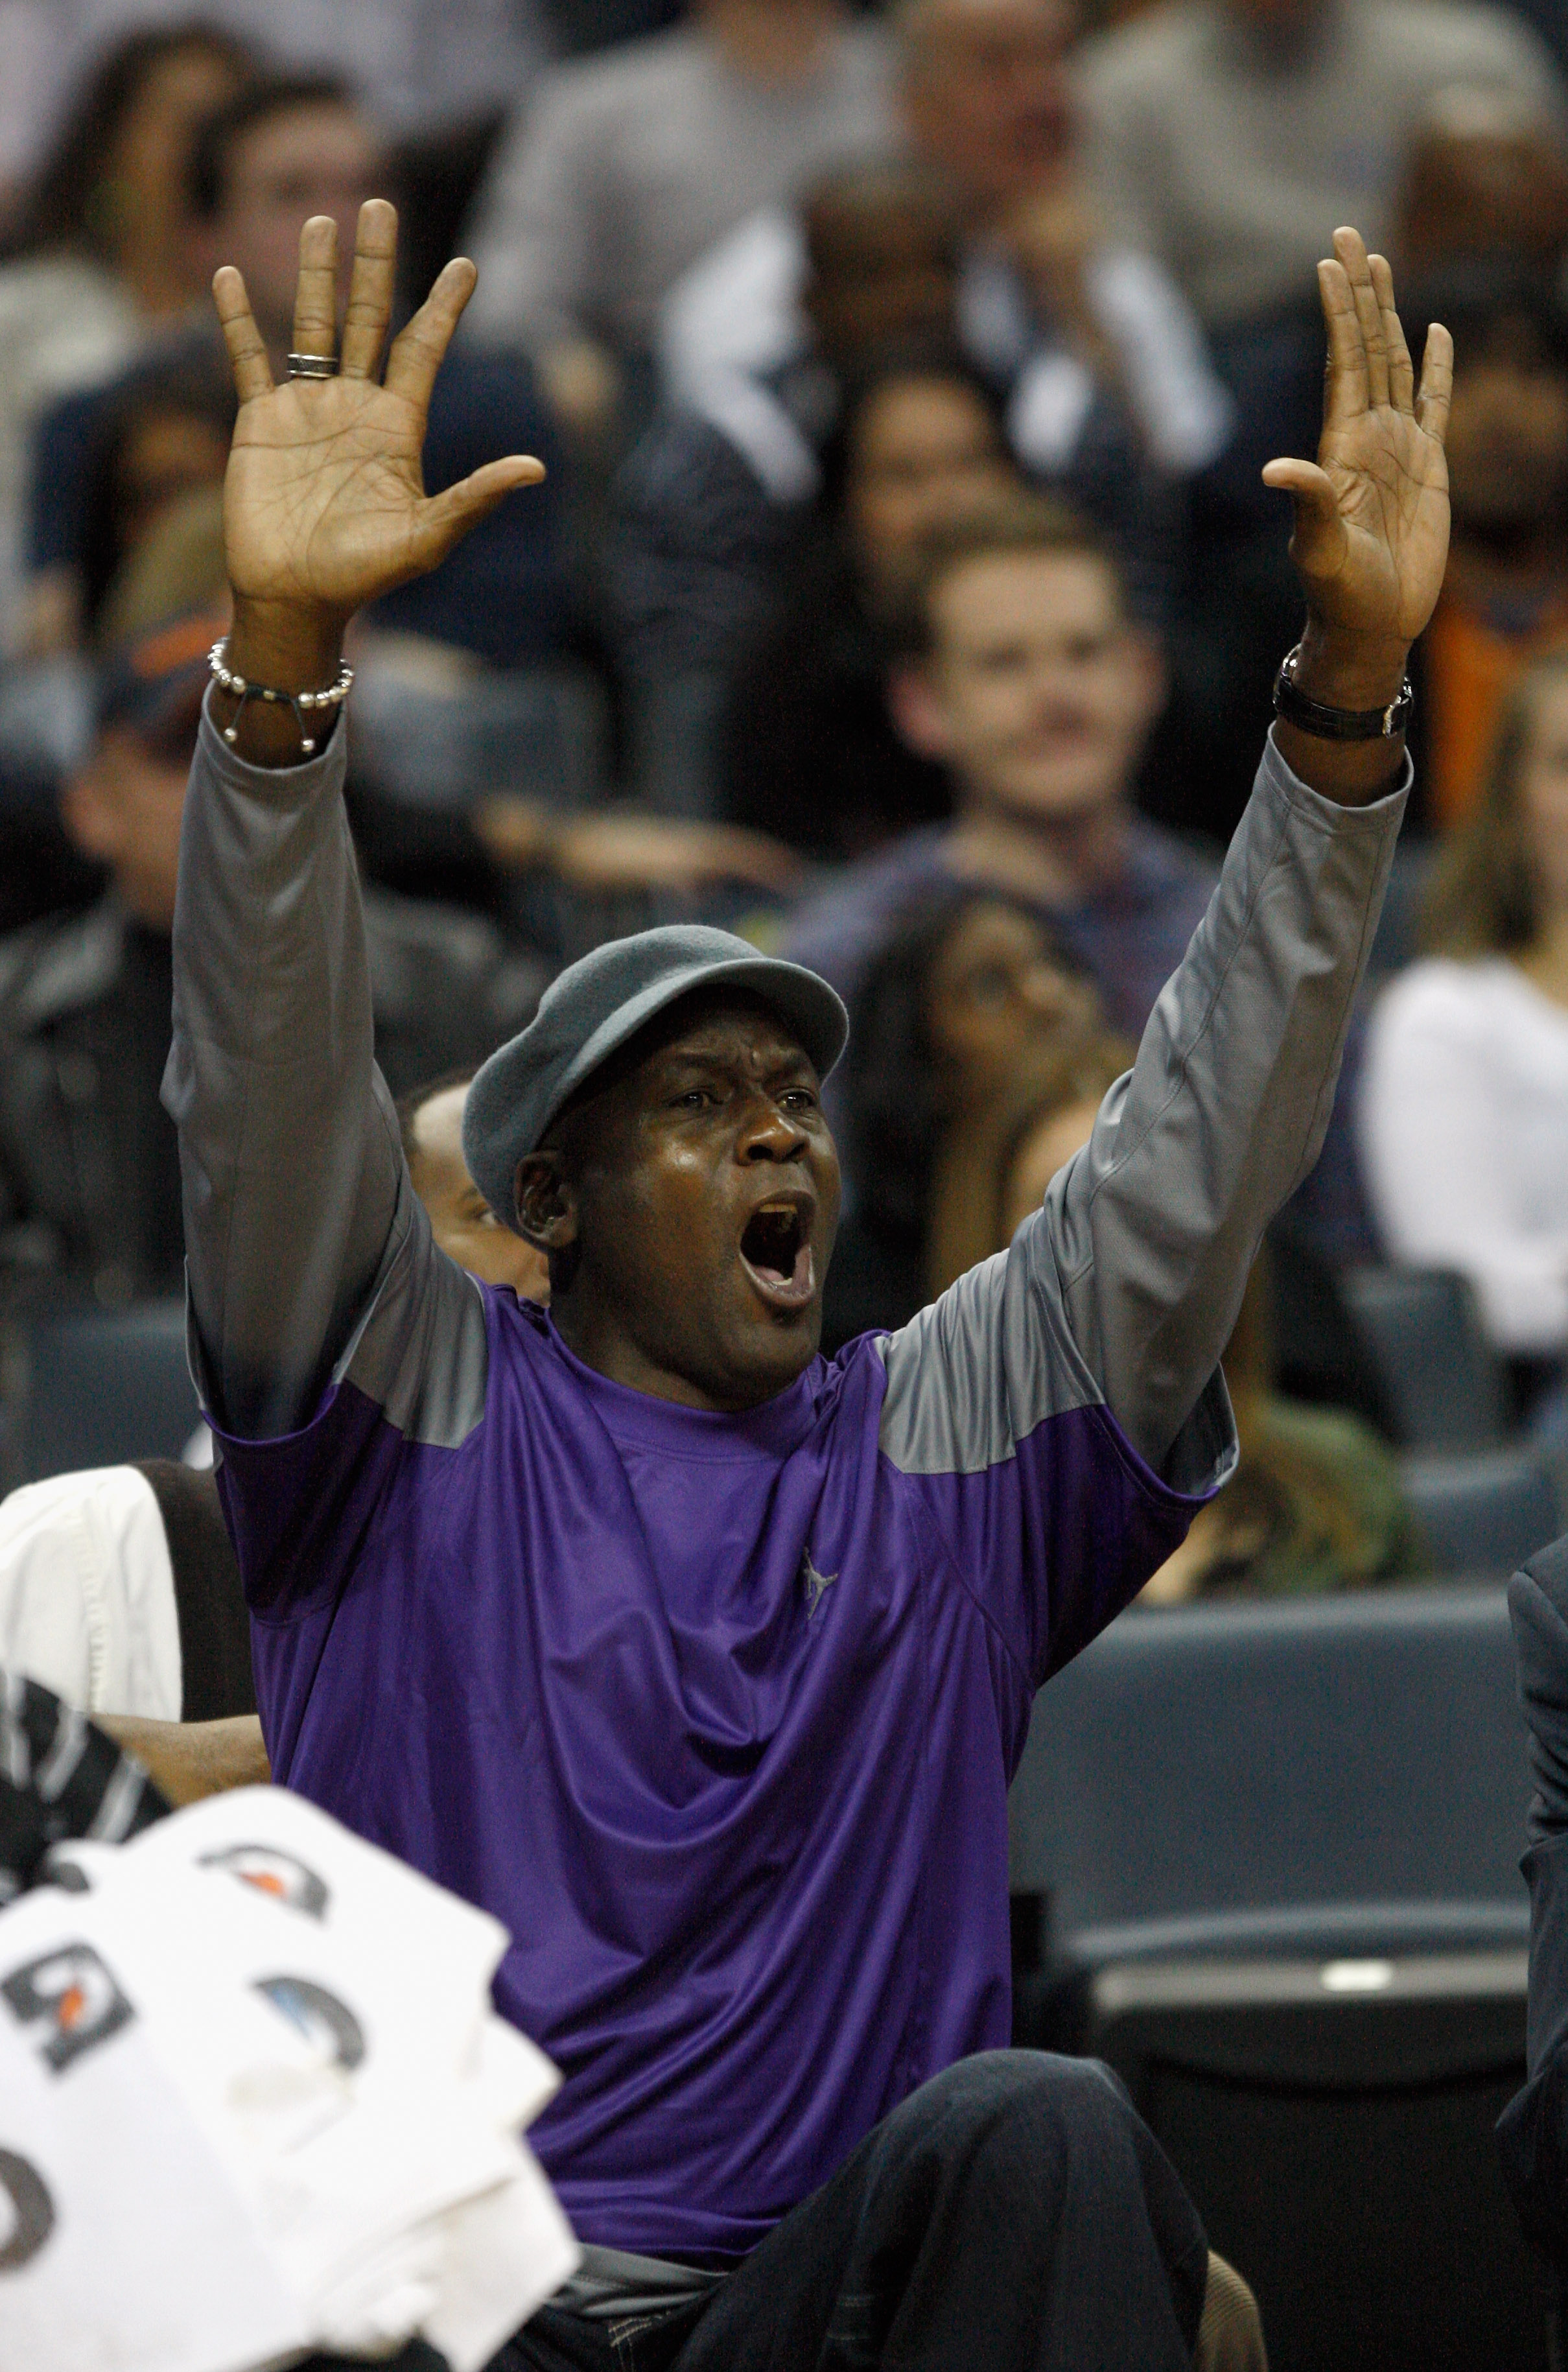 CHARLOTTE, NC - FEBRUARY 11:  Charlotte Bobcats owner, Michael Jordan, reacts to a call while sitting on the bench during their game against the New Jersey Nets at Time Warner Cable Arena on February 11, 2011 in Charlotte, North Carolina. NOTE TO USER: Us